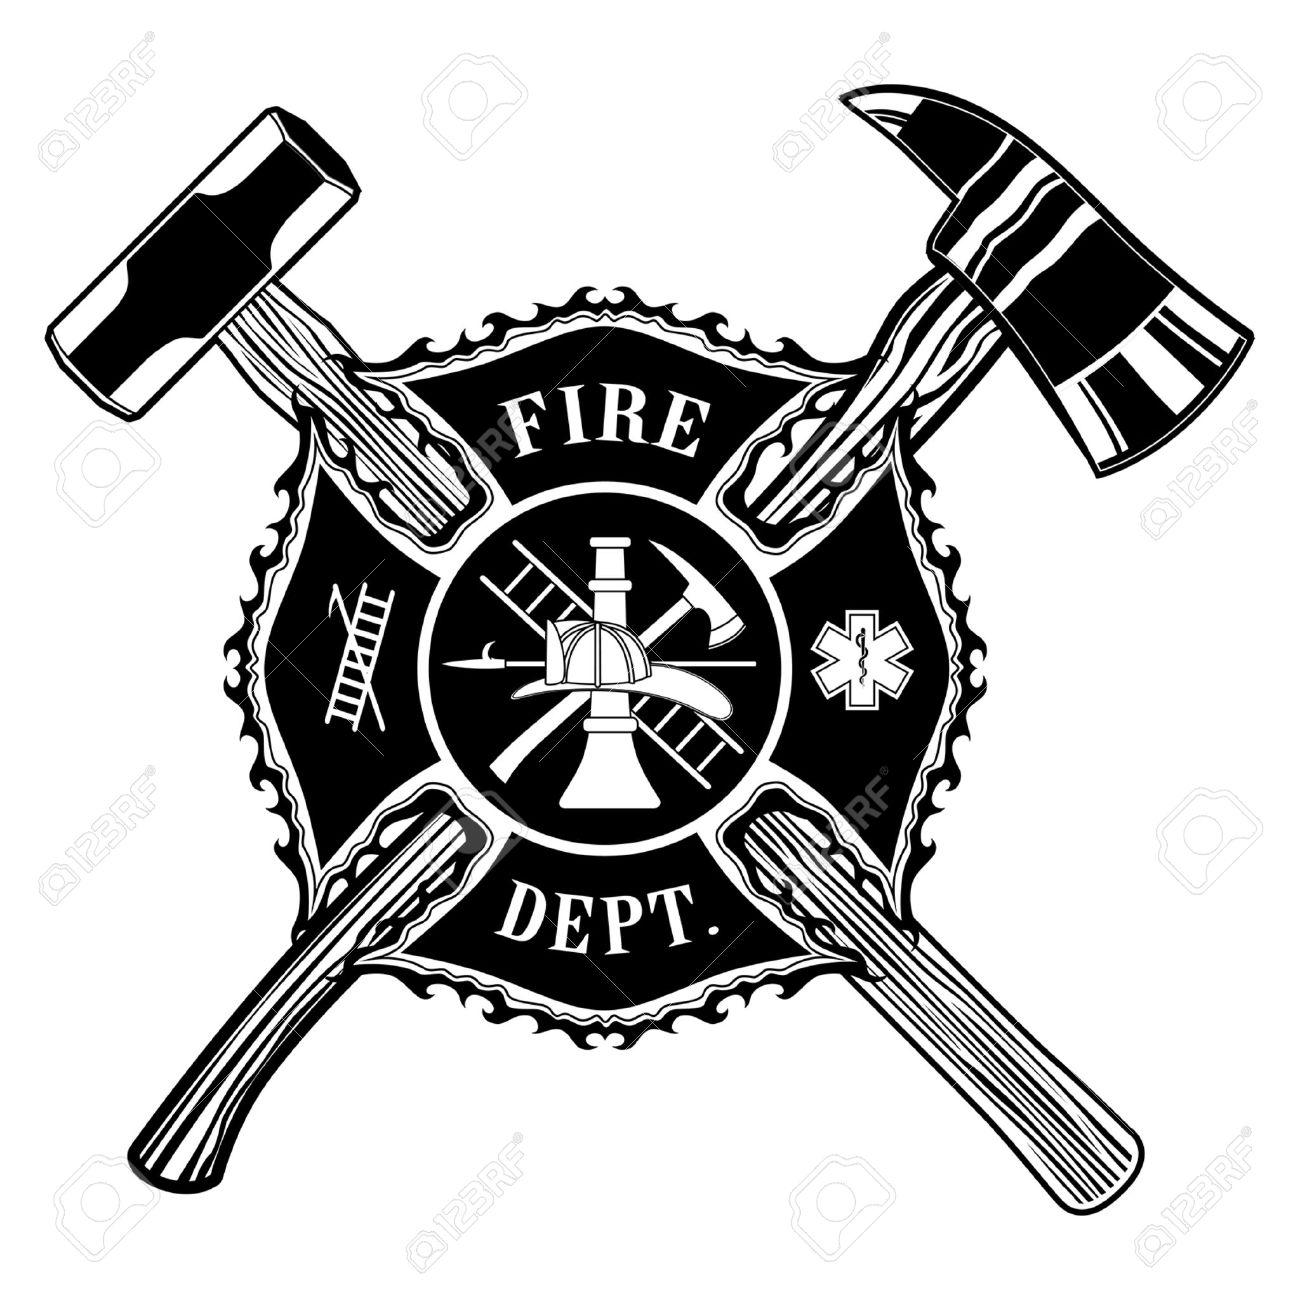 6850 fire department cliparts stock vector and royalty free fire firefighter cross ax and sledge hammer is an illustration of a firefighter or fireman maltese cross buycottarizona Choice Image